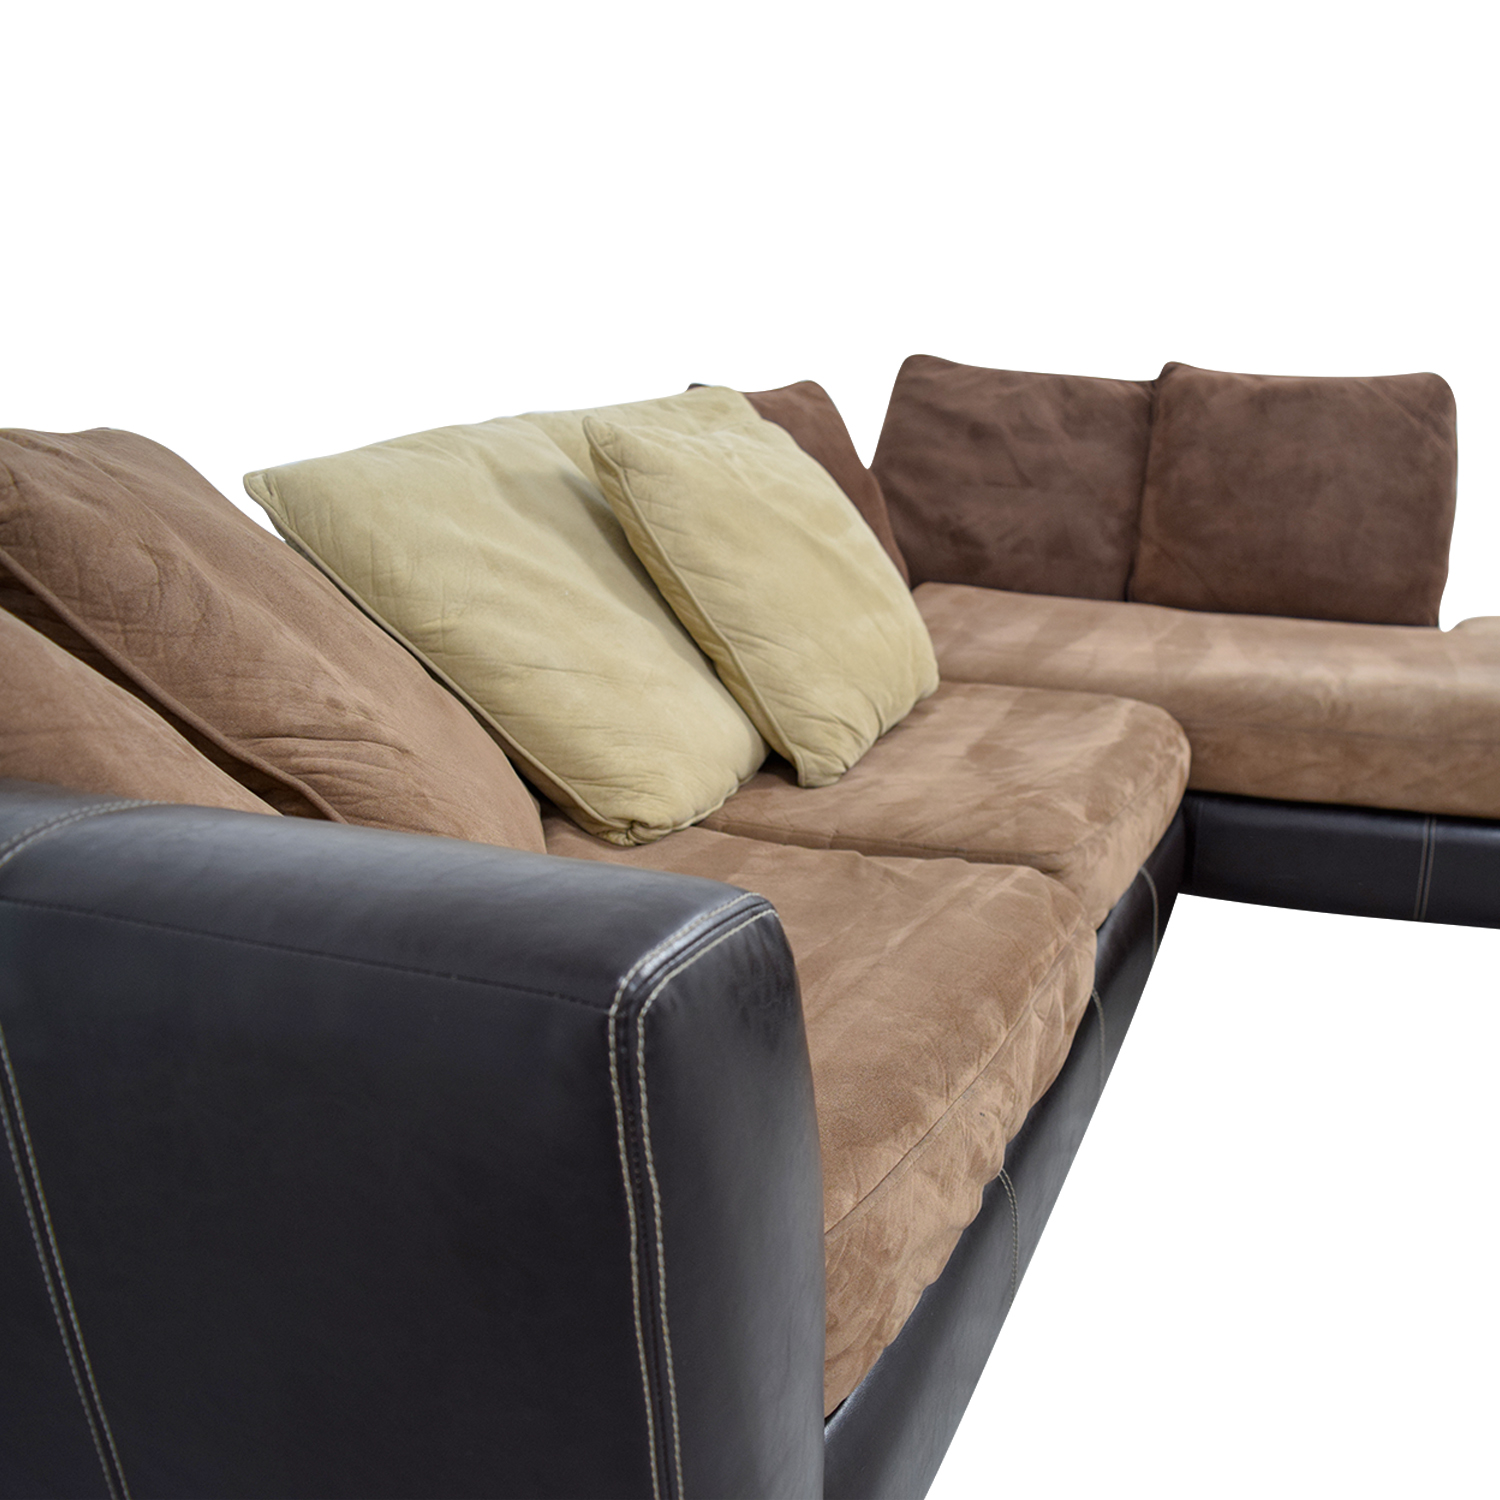 albany industries leather sofa can you recover sofas with fabric 89 off brown chaise